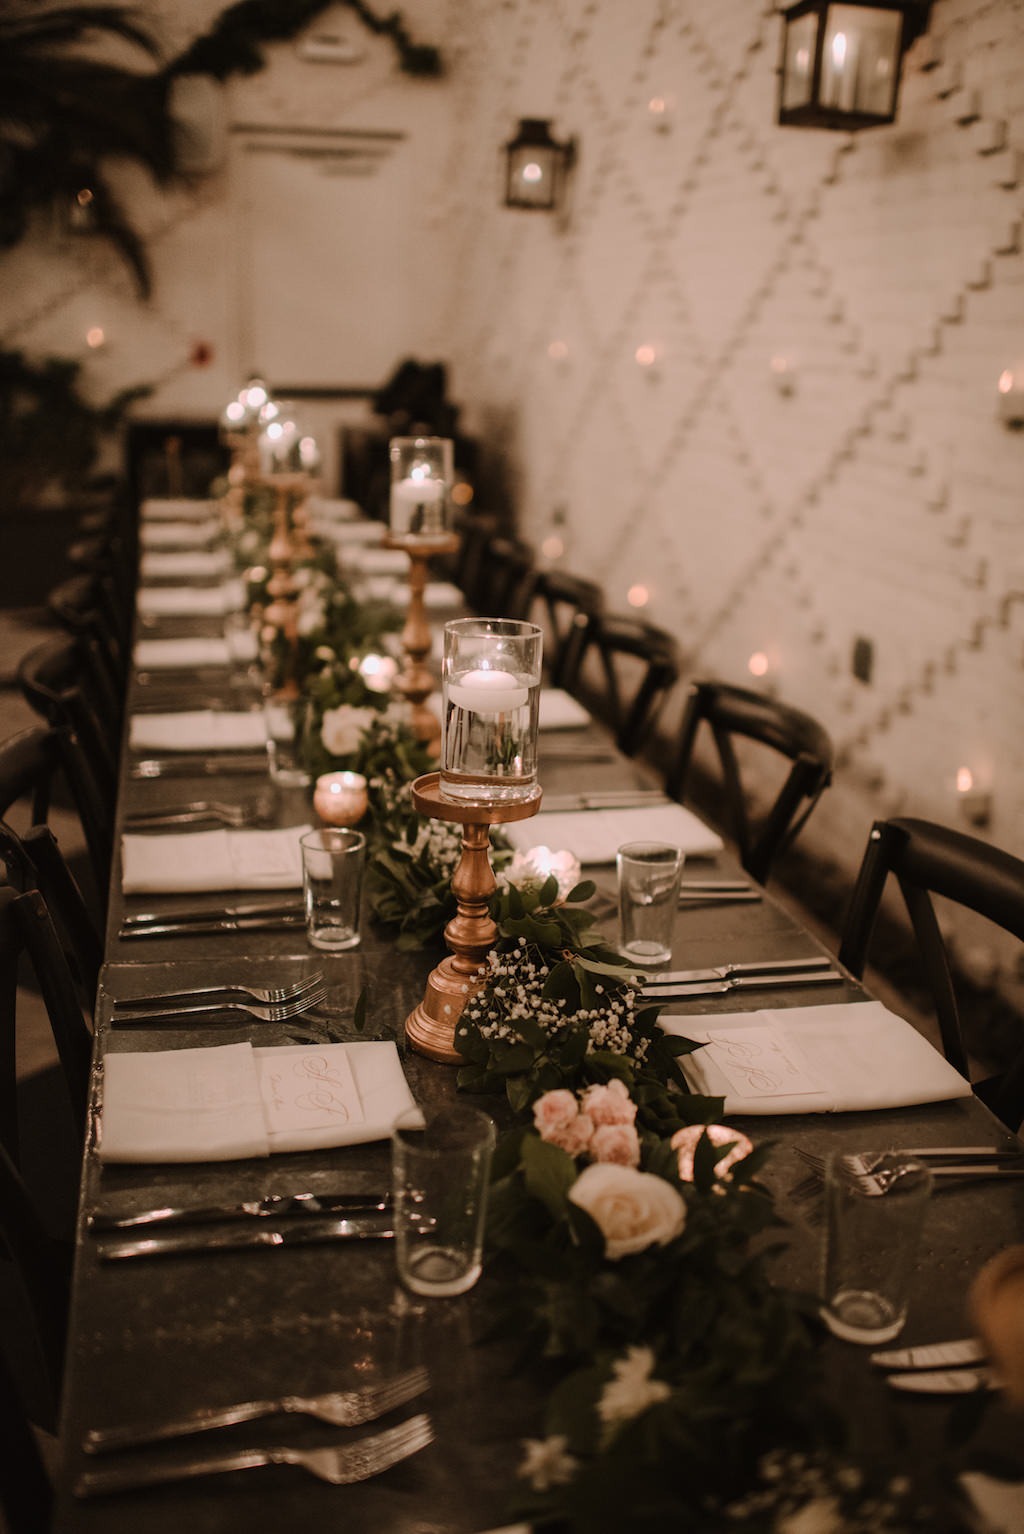 Romantic Intimate Atrium Wedding Reception Decor with Long Metal Feasting Tables with Greenery Garland and White Roses and Baby's Breath Centerpiece, Black Crossback Chairs, White Linen Napkins, Gold Candlesticks and Floating Candles | South Tampa Historic Wedding Venue The Oxford Exchange